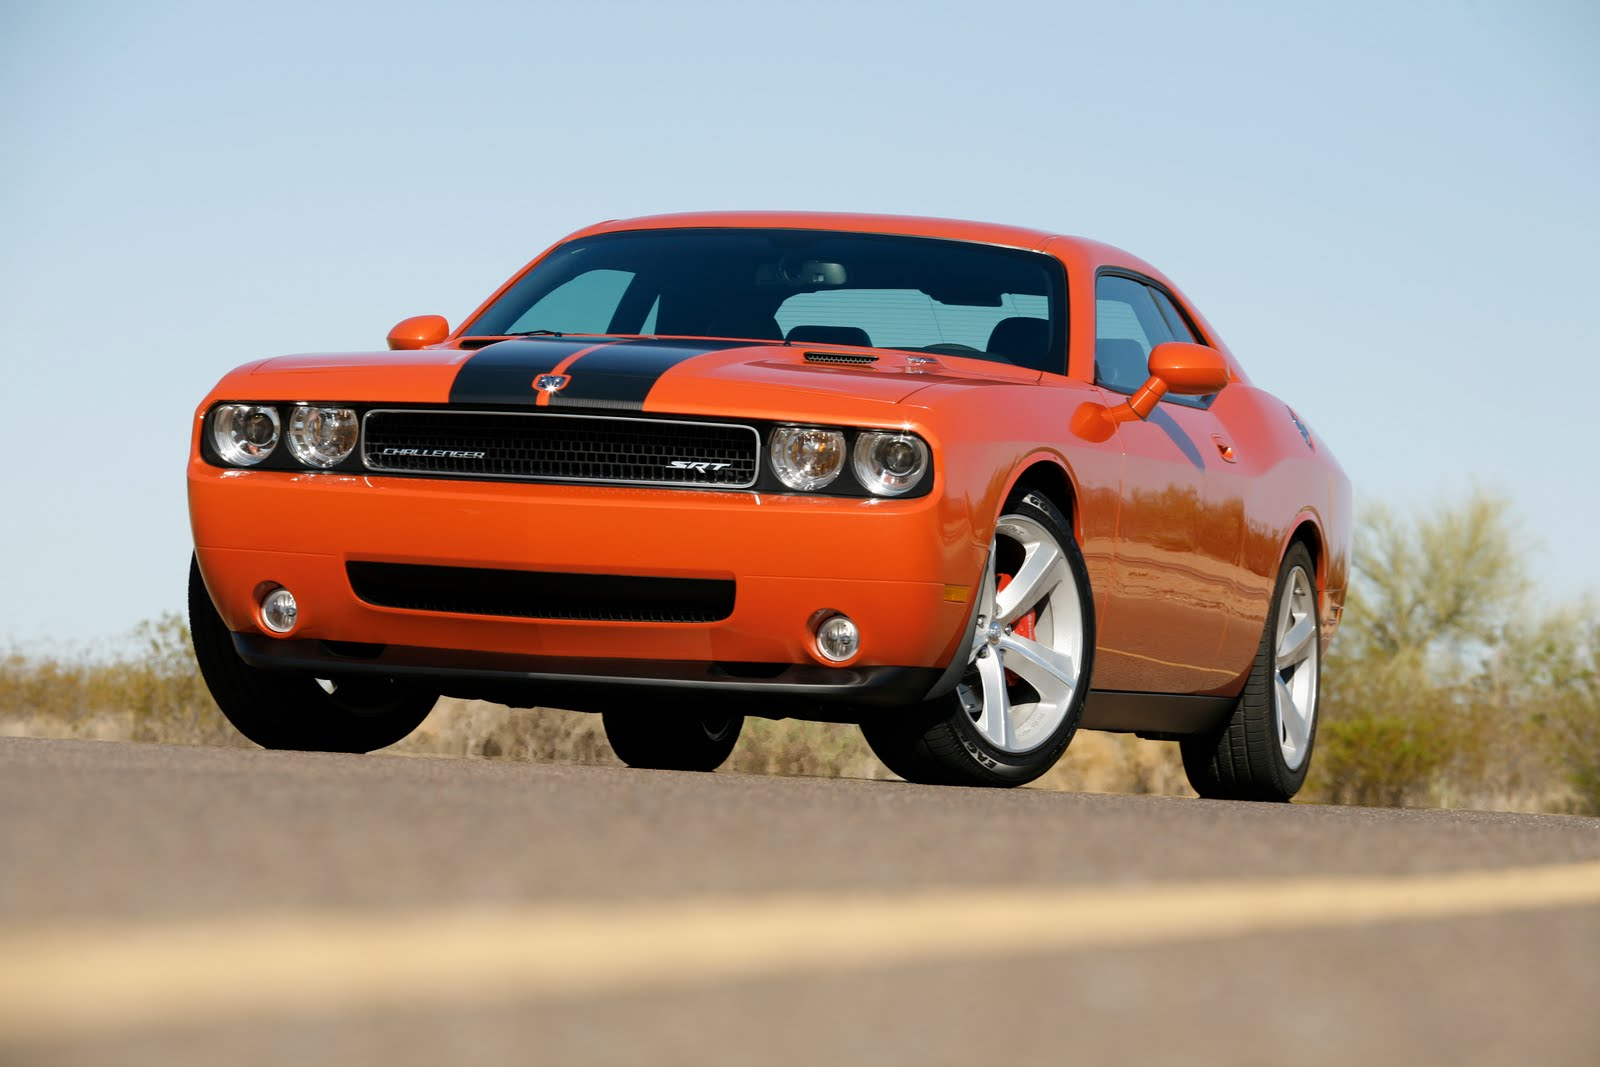 Dodge Challenger HD Wallpapers | Desktop Wallpapers